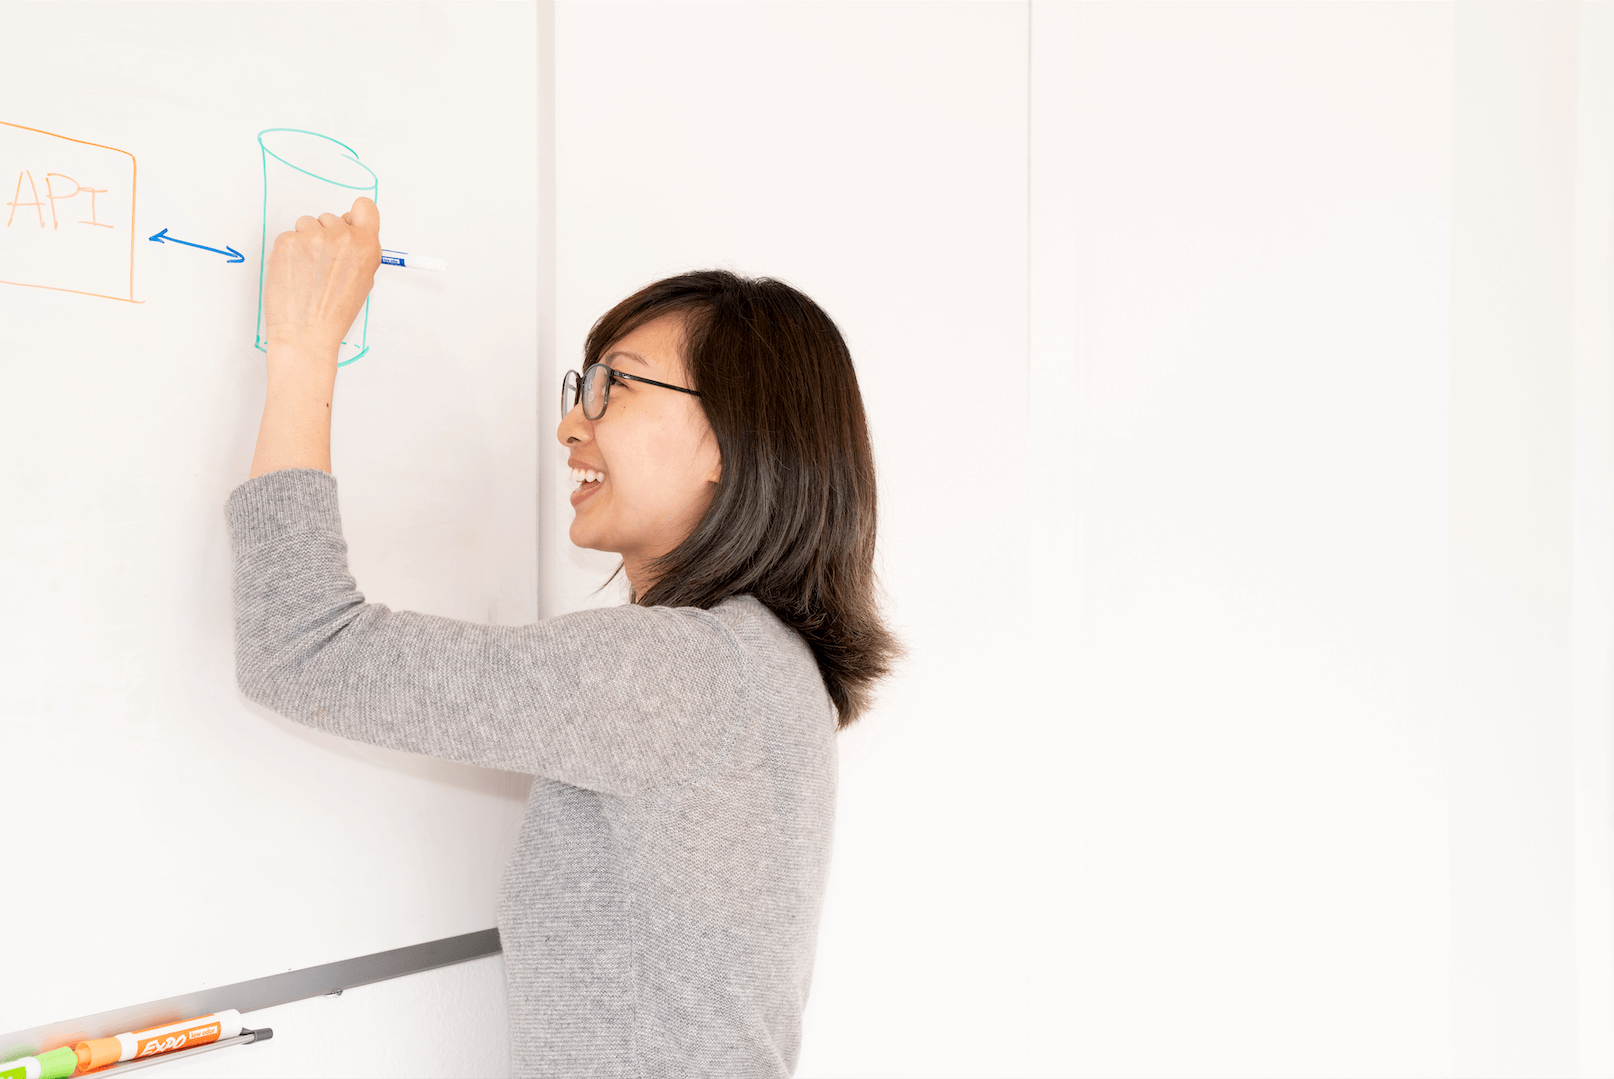 Pathpoint team member draws on whiteboard